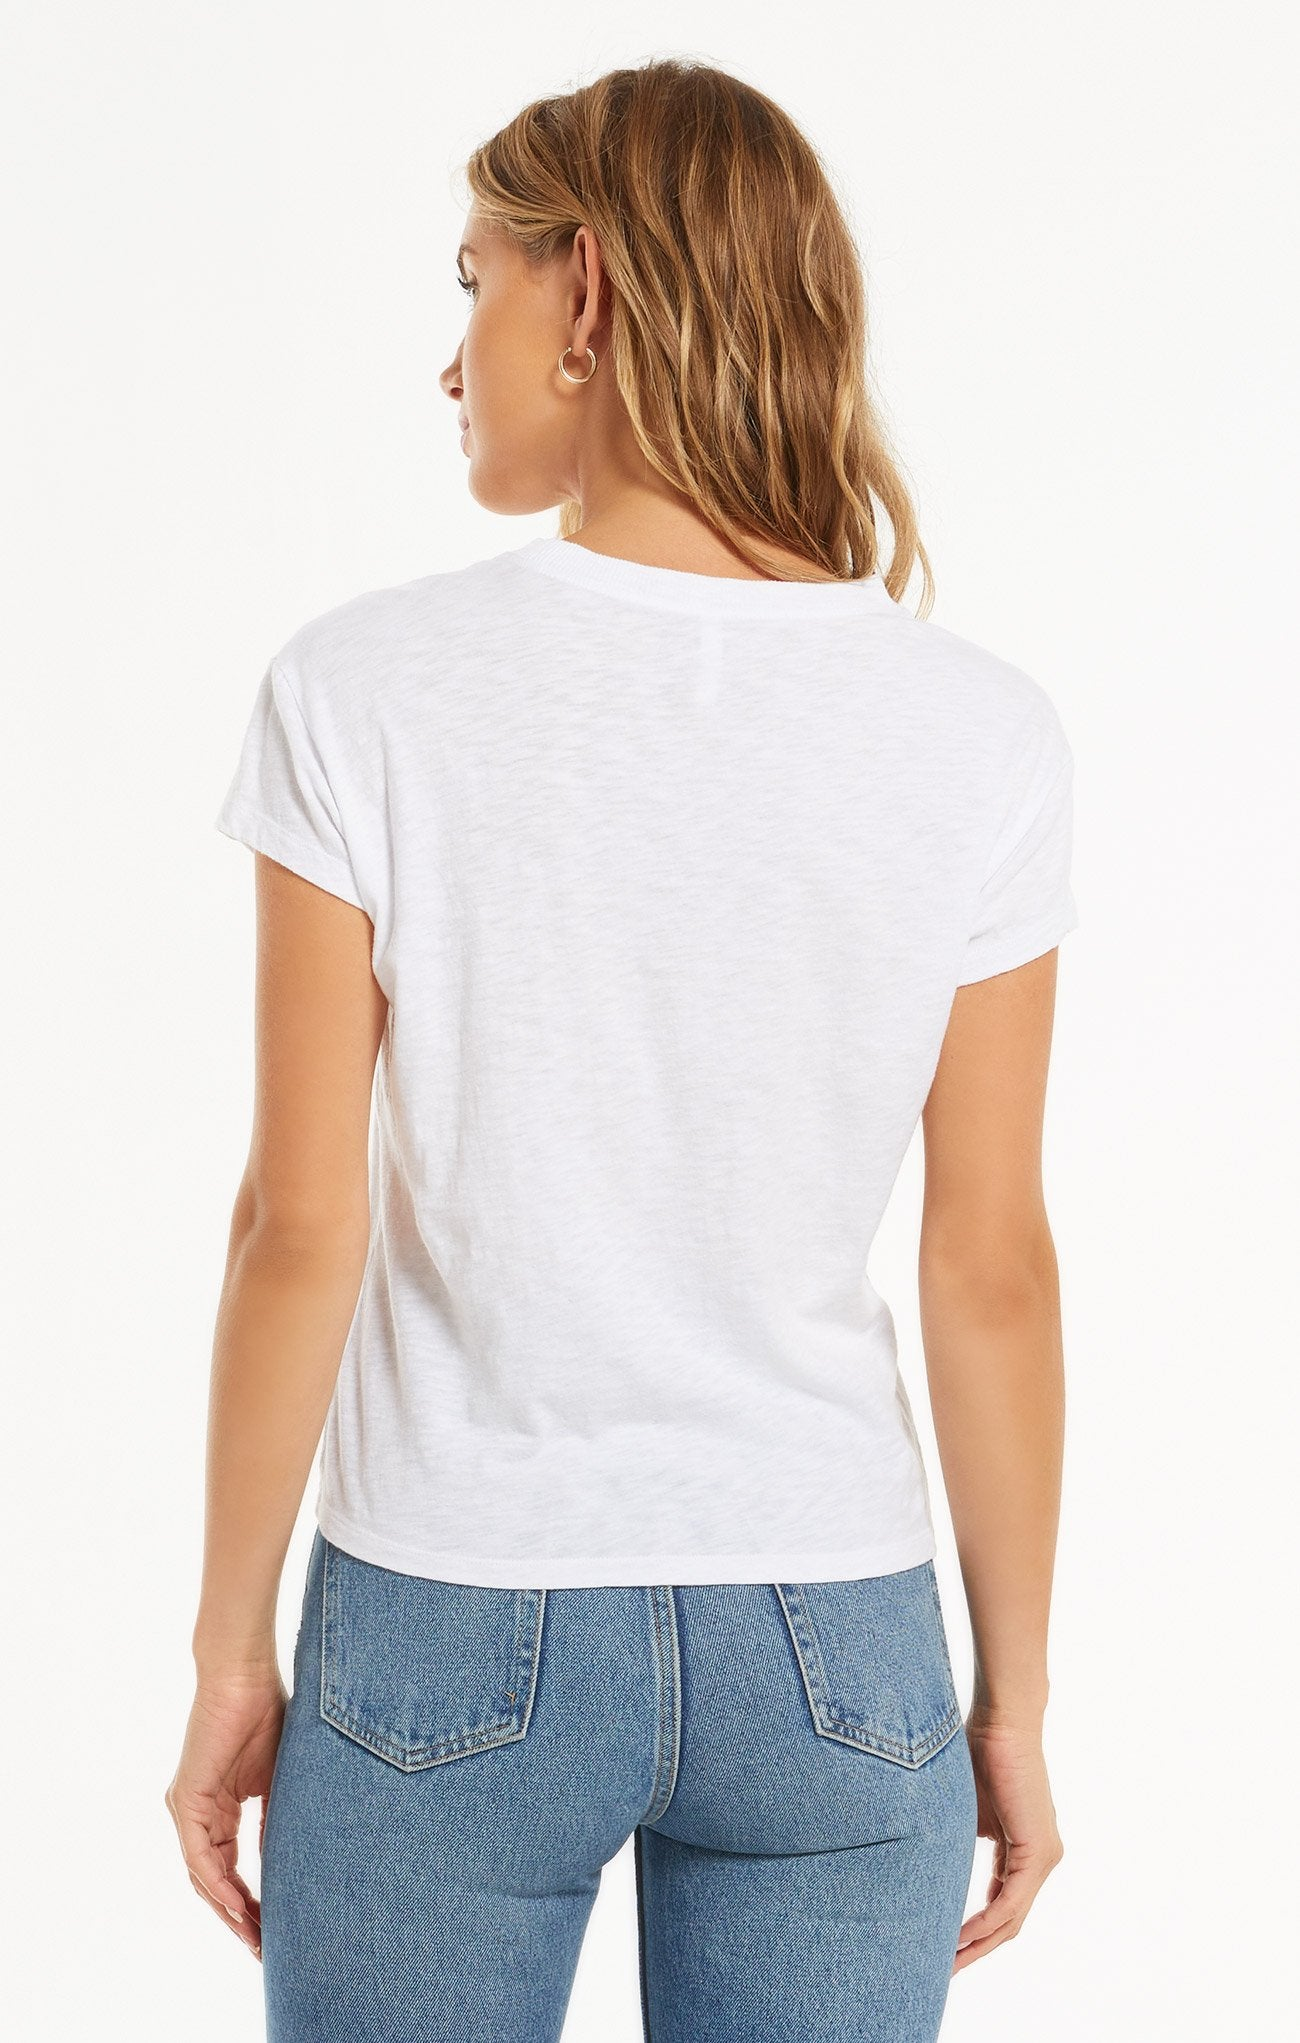 Modern Slub Tee in White